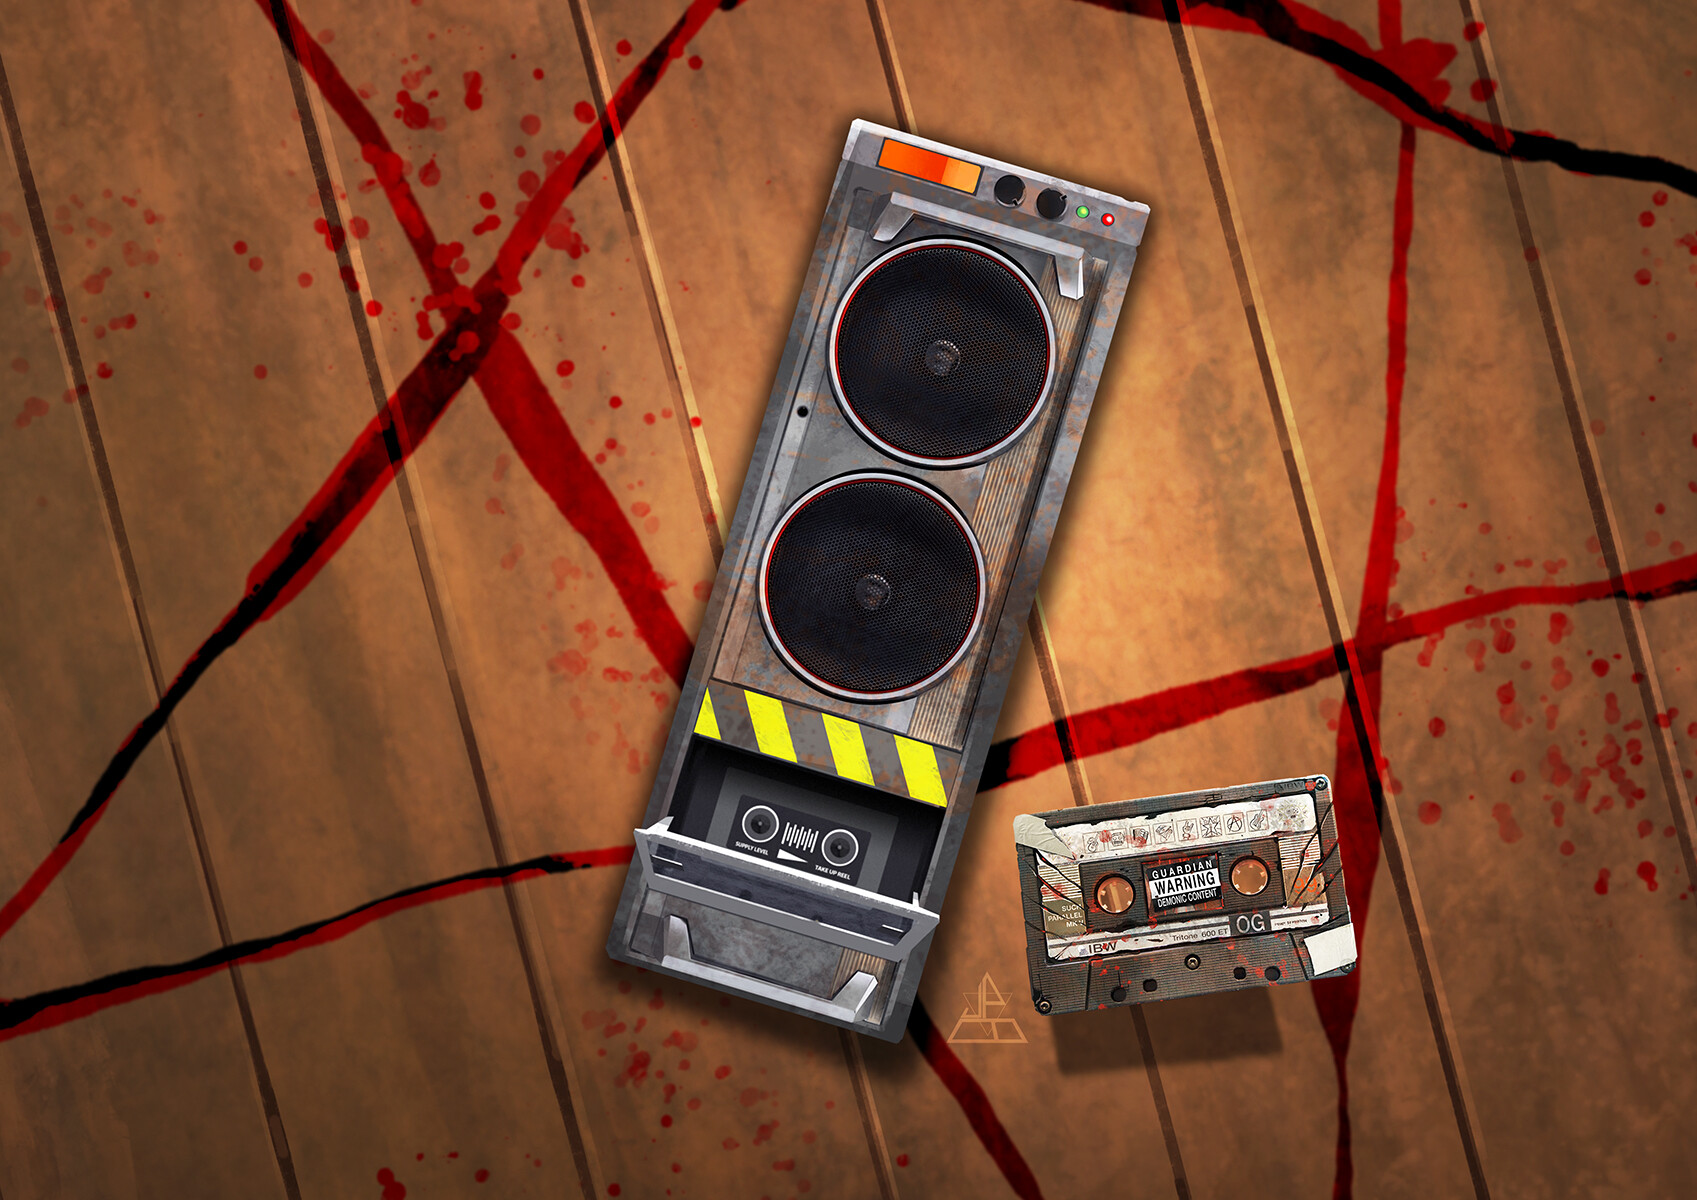 Mini tape deck (ghost trap style) and Cursed Mixtape